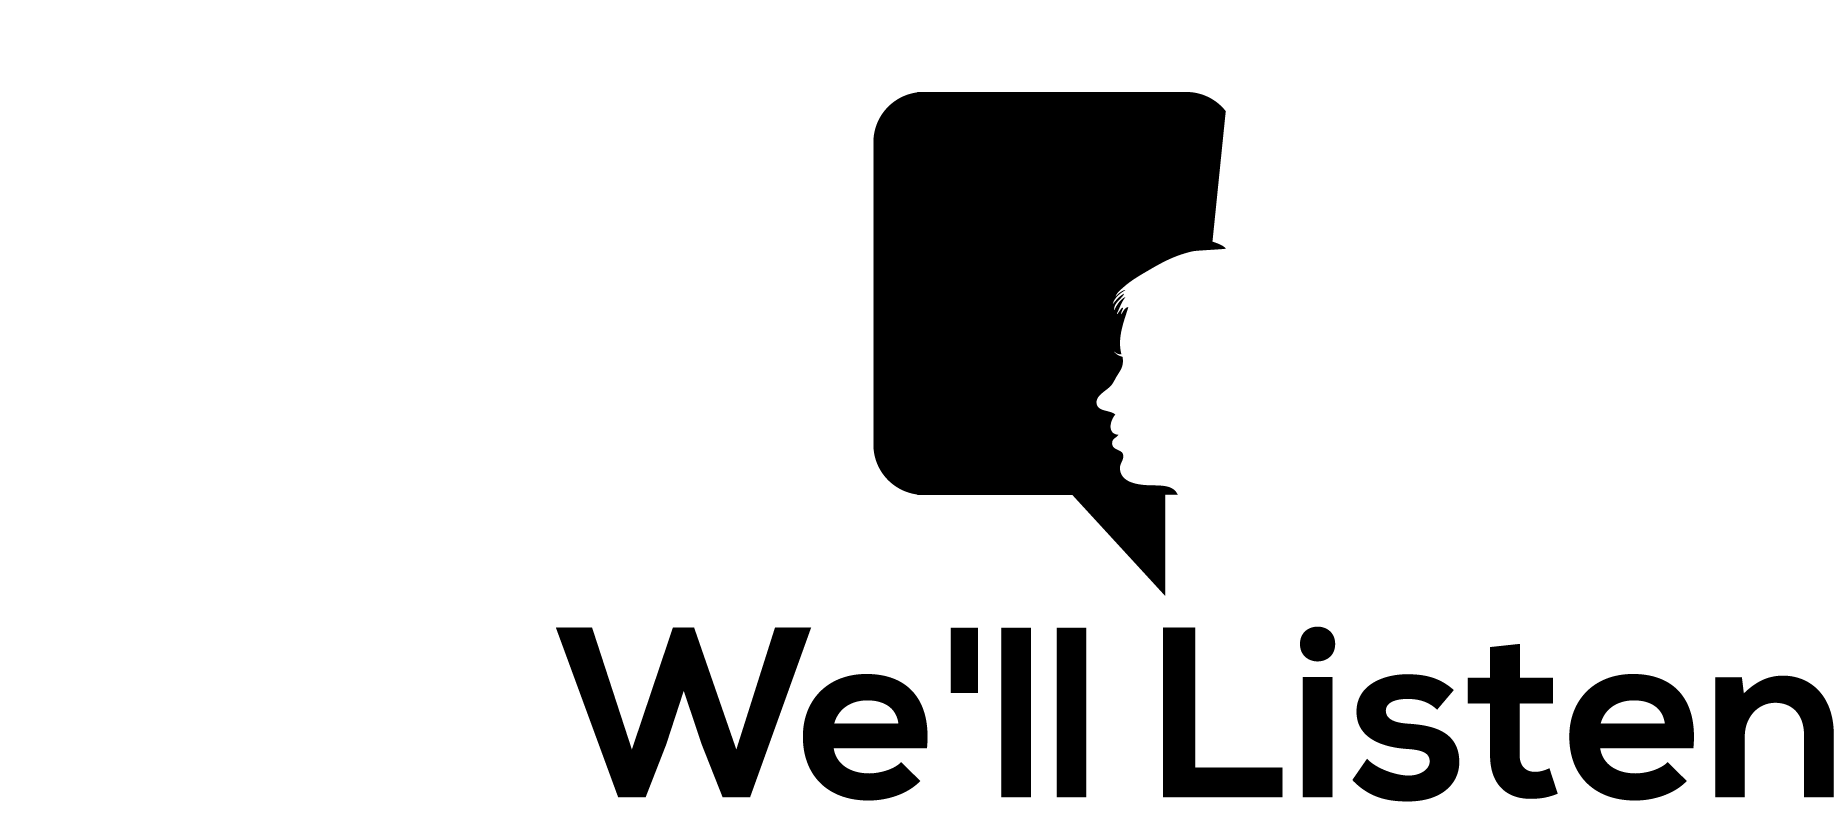 talk we will listen logo